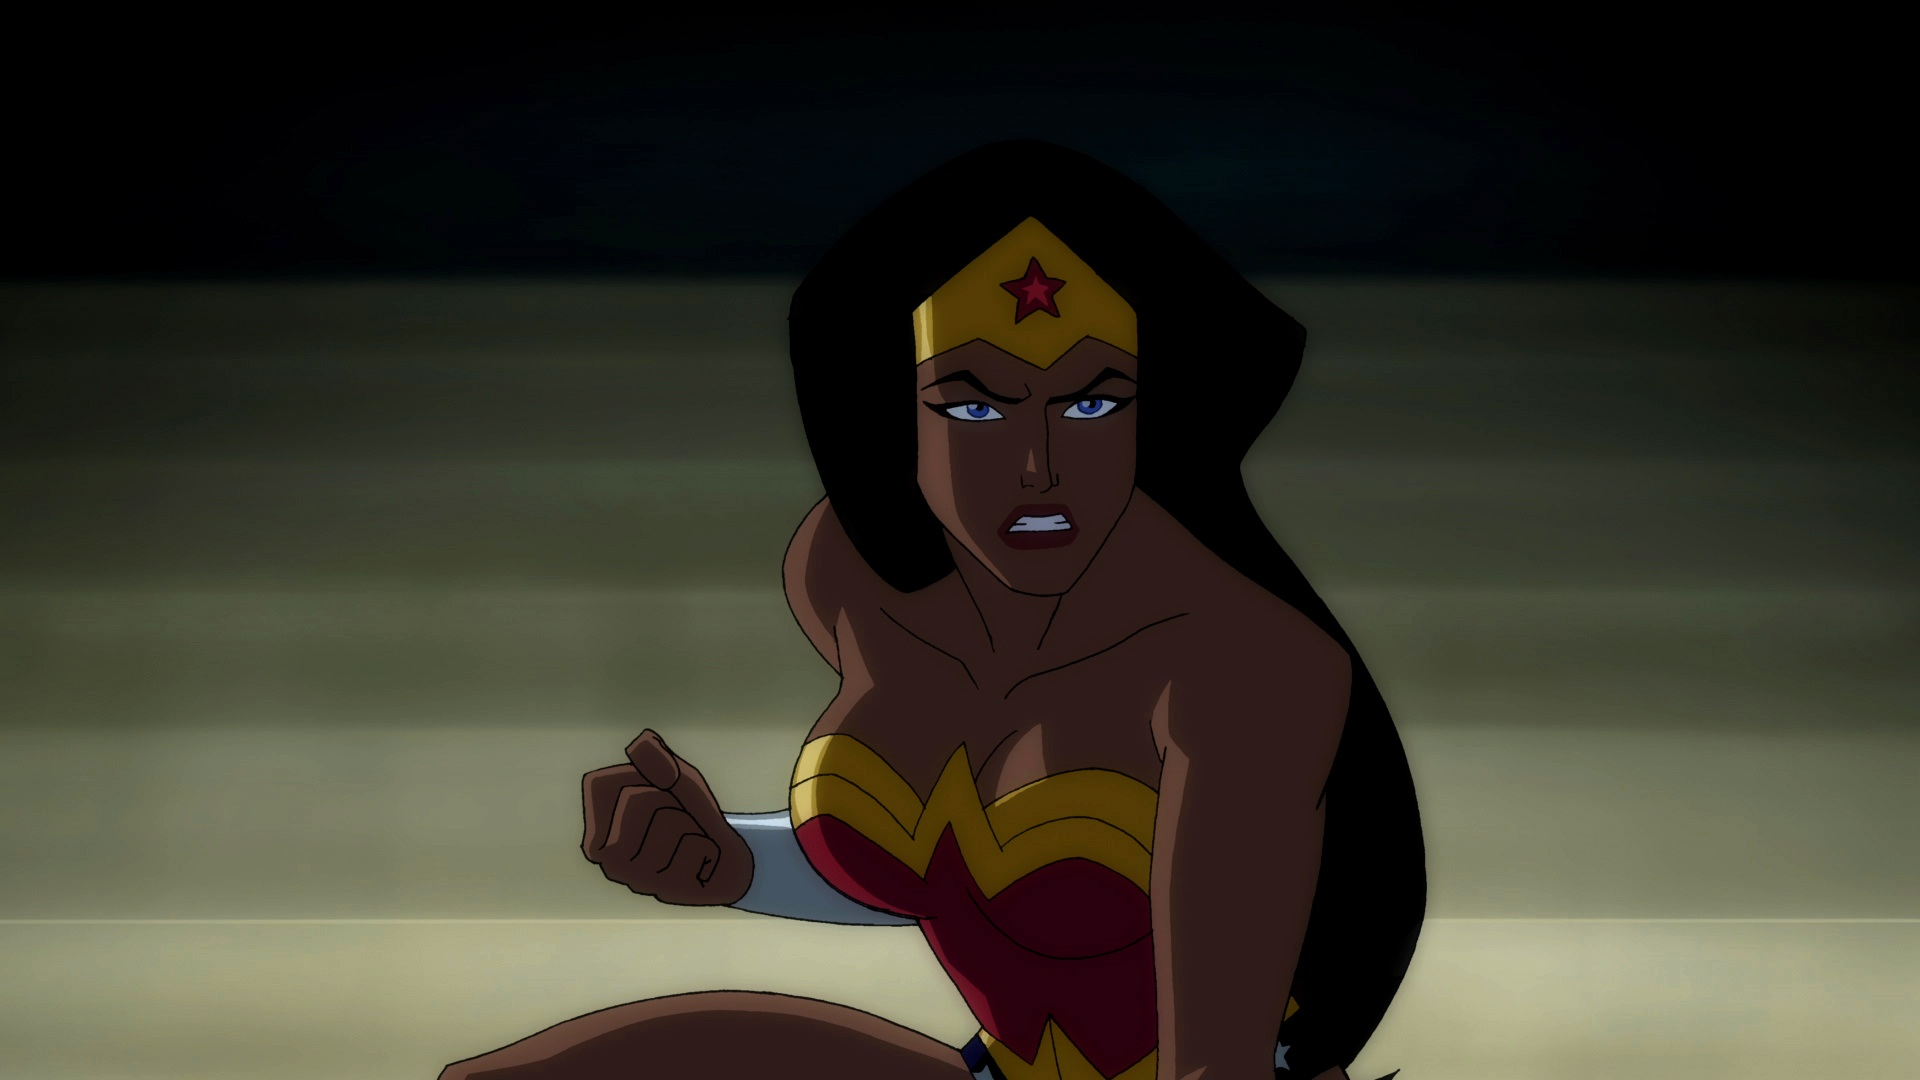 wonderwoman-fist-030109